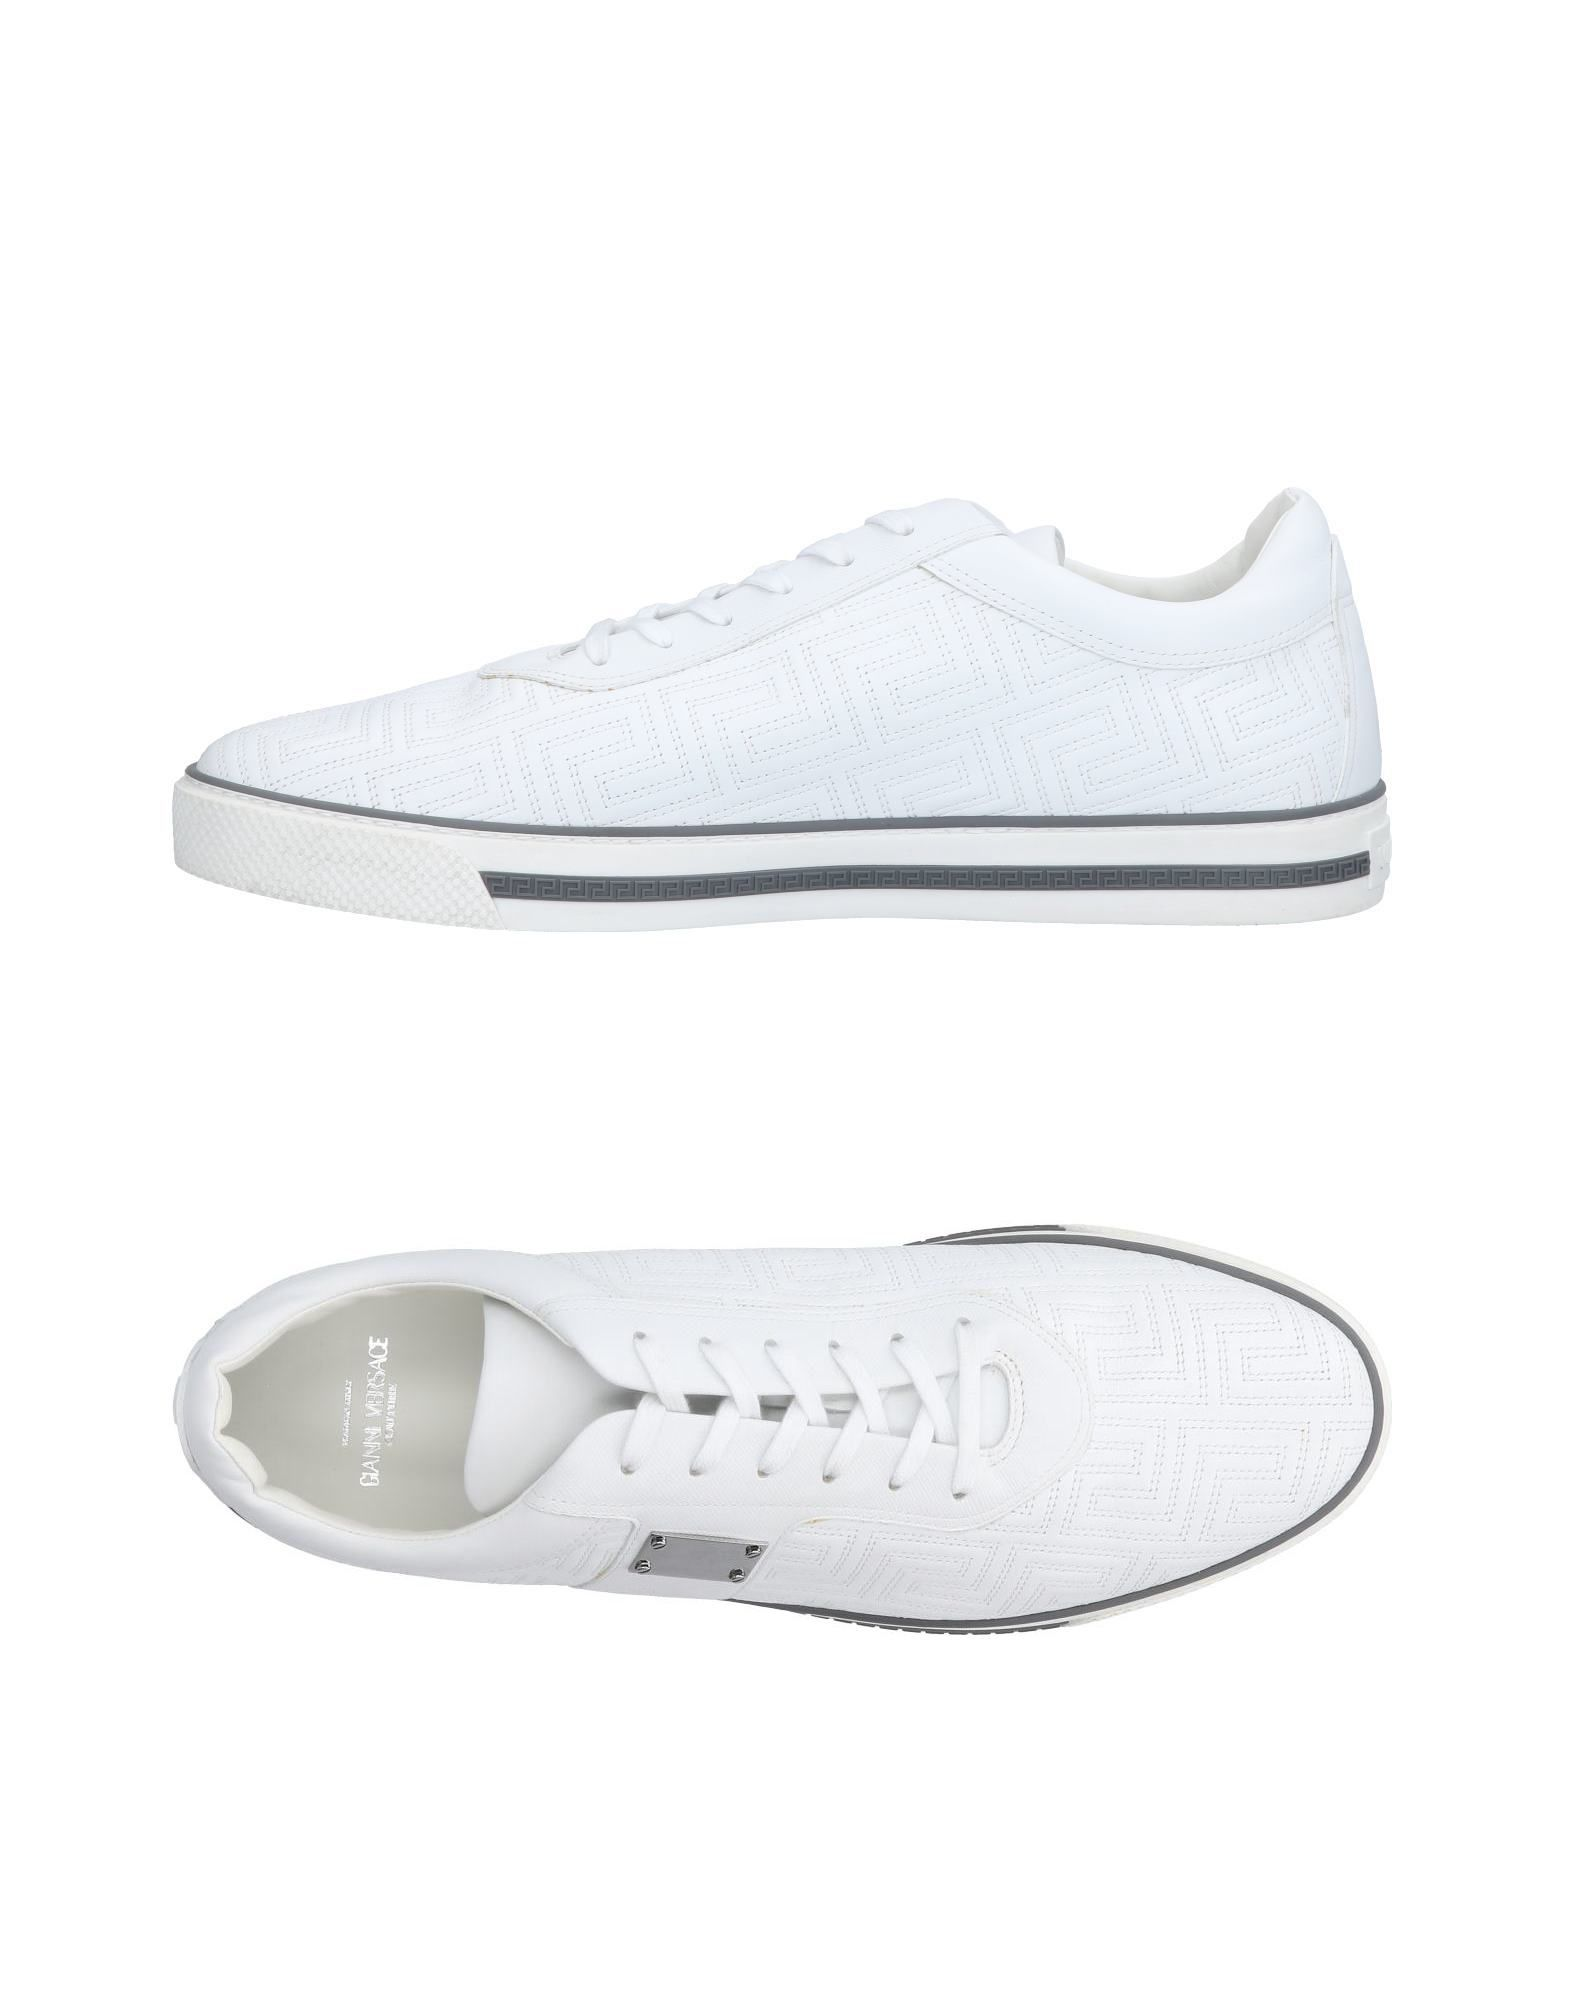 Sneakers Gianni Versace Couture Homme - Sneakers Gianni Versace Couture  Blanc Meilleur modèle de vente